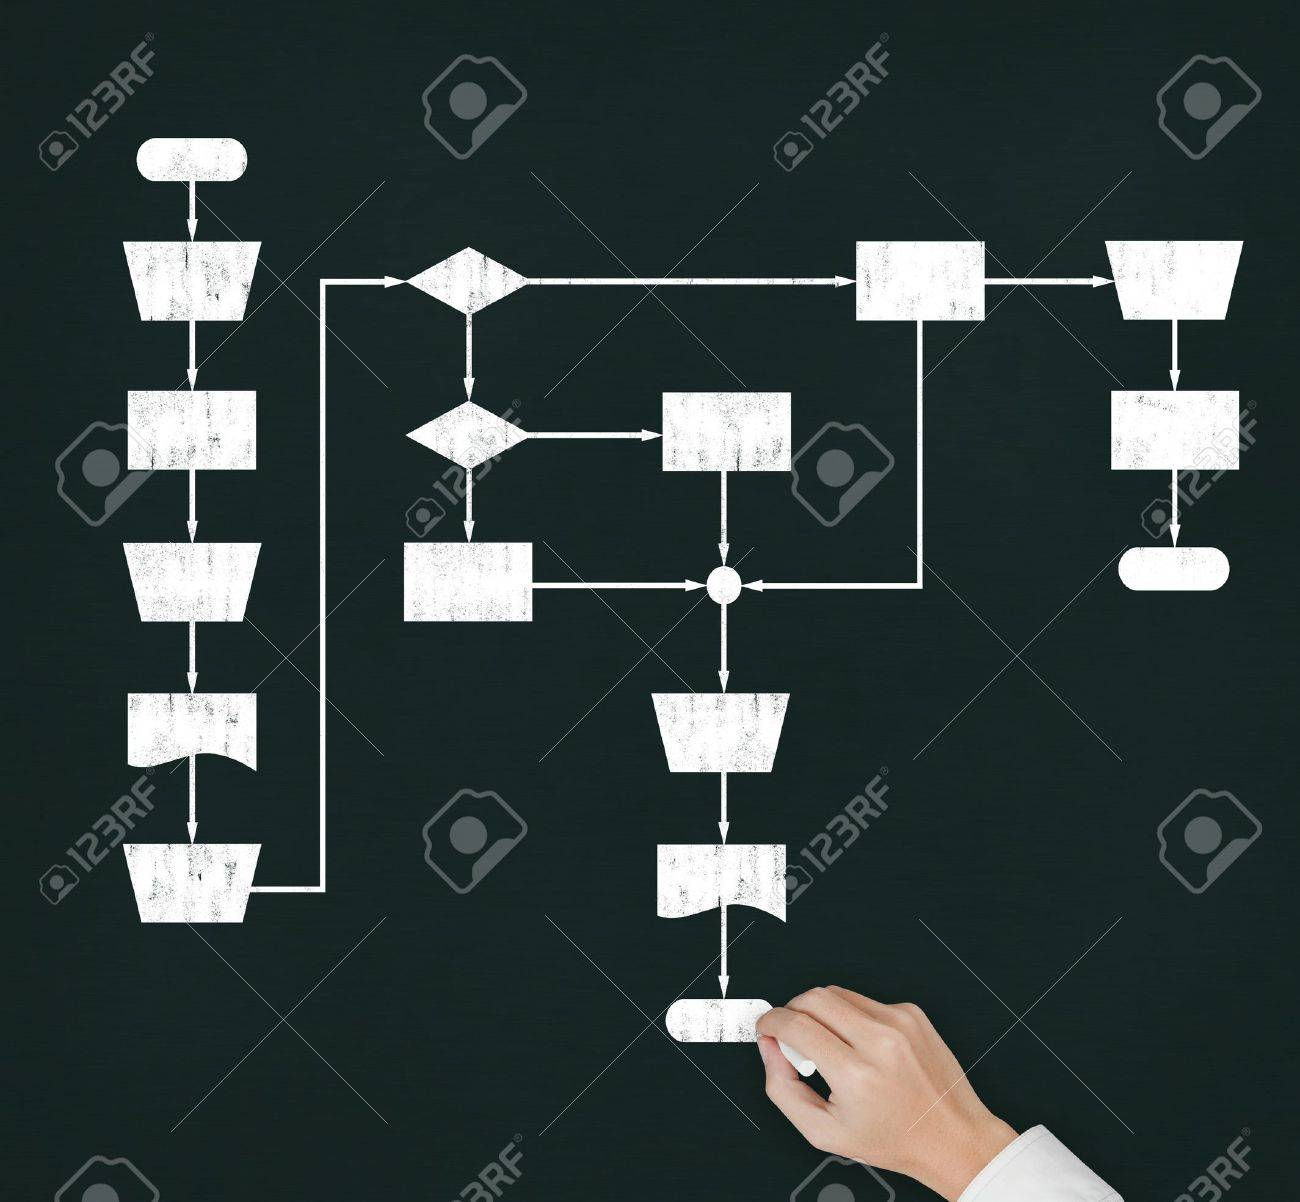 hand writing decision making process flow diagram on chalkboard Stock Photo - 13241699